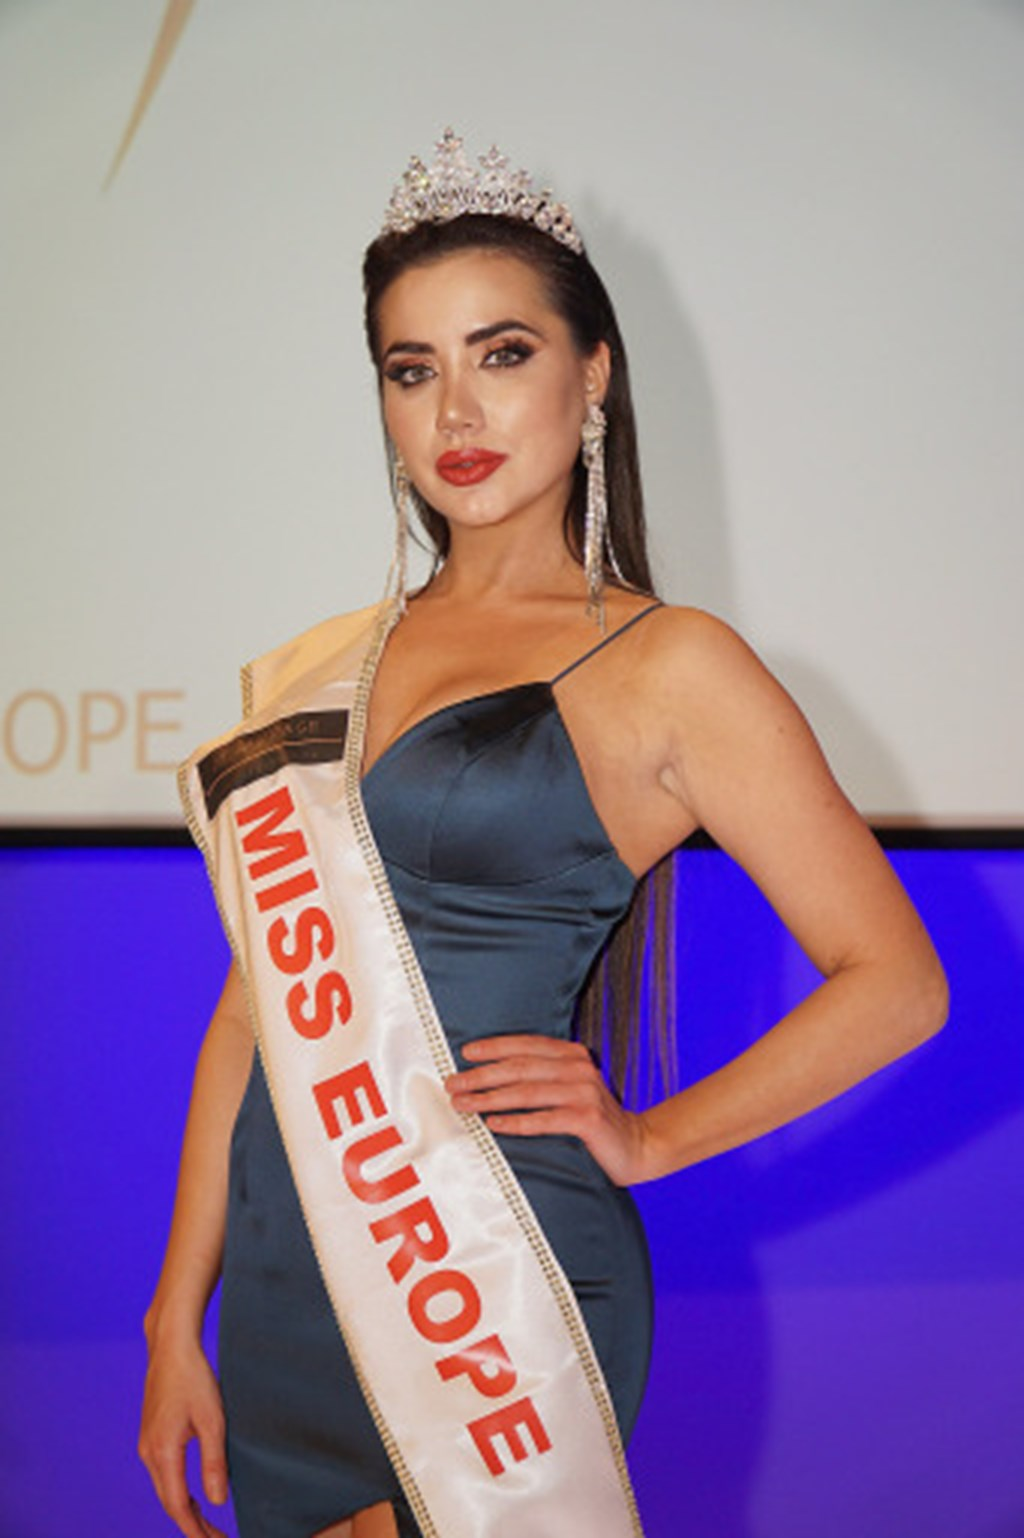 Vienna crowned the most beautiful woman in Europe    research!